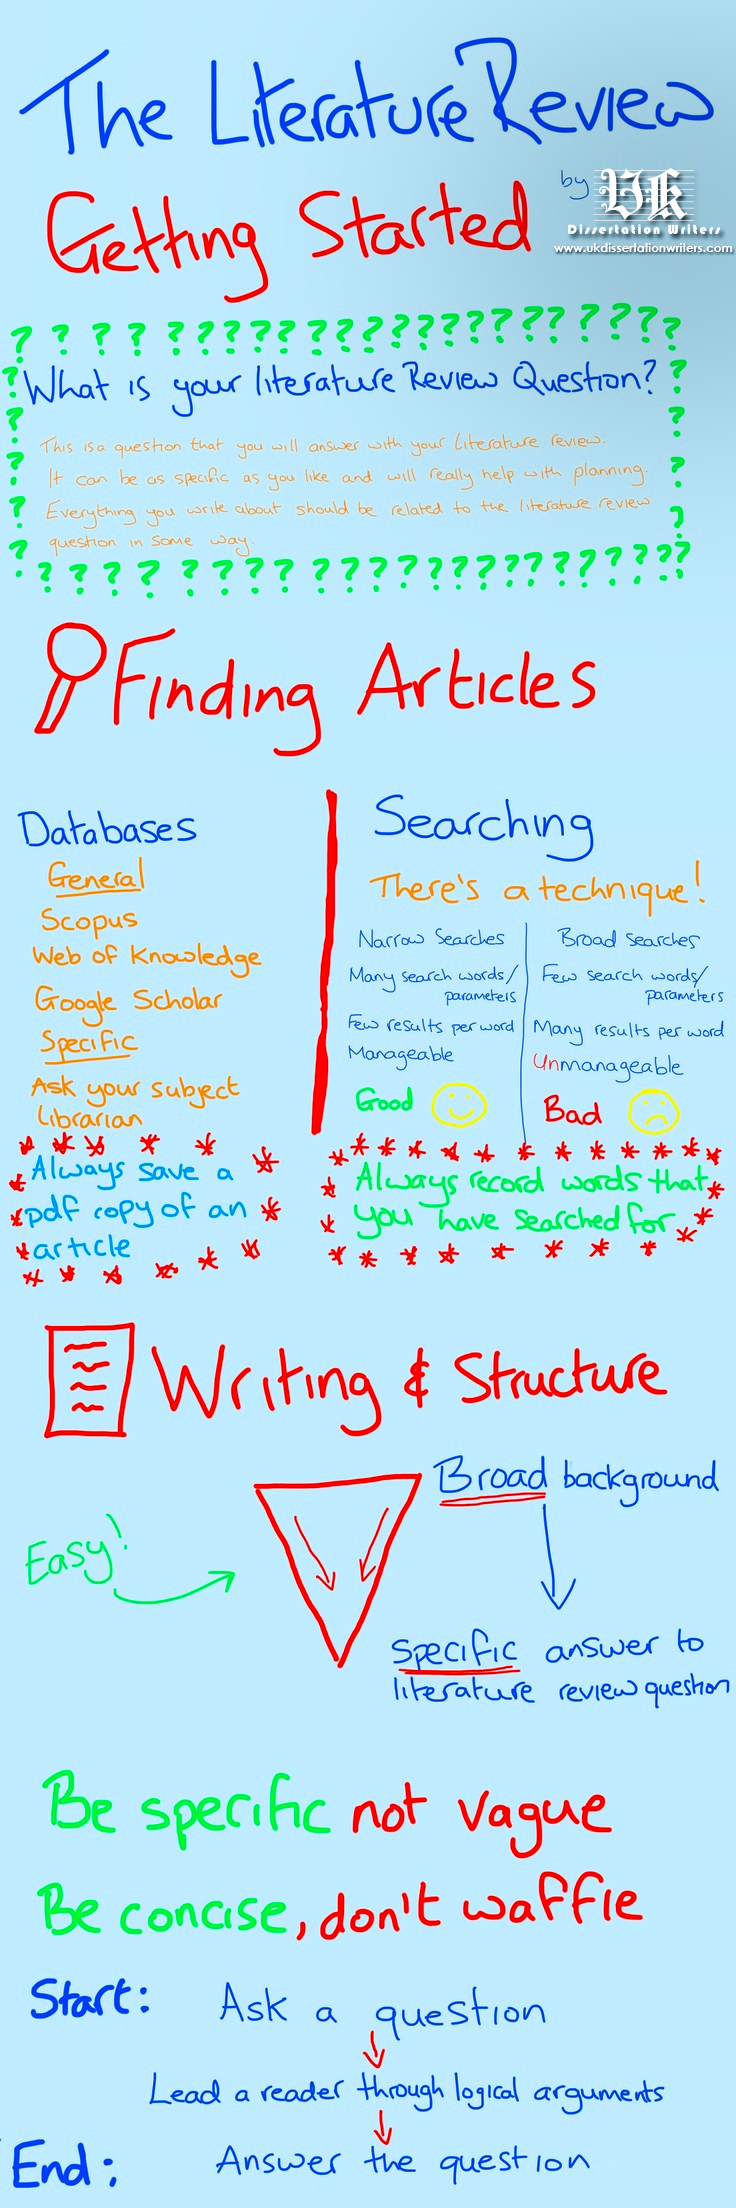 Infographic_UK-Dissertation-Writers_The-Literature-Review_Getting-Started-Guide